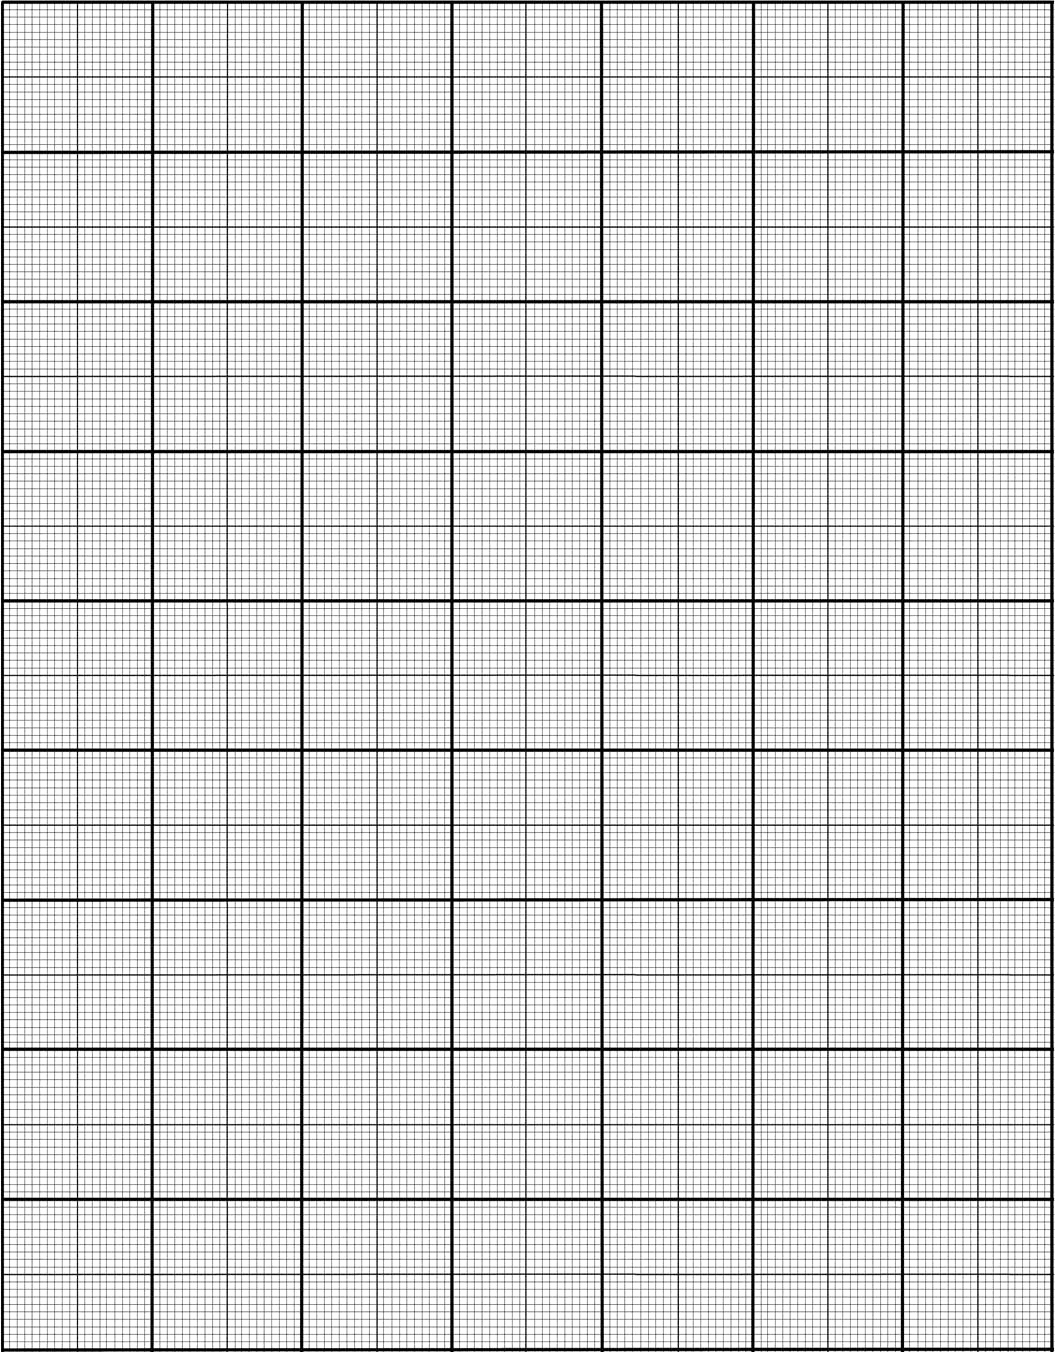 Graph Paper Template Word New 20 Square Per Inch Graph Paper for Graphic Applications